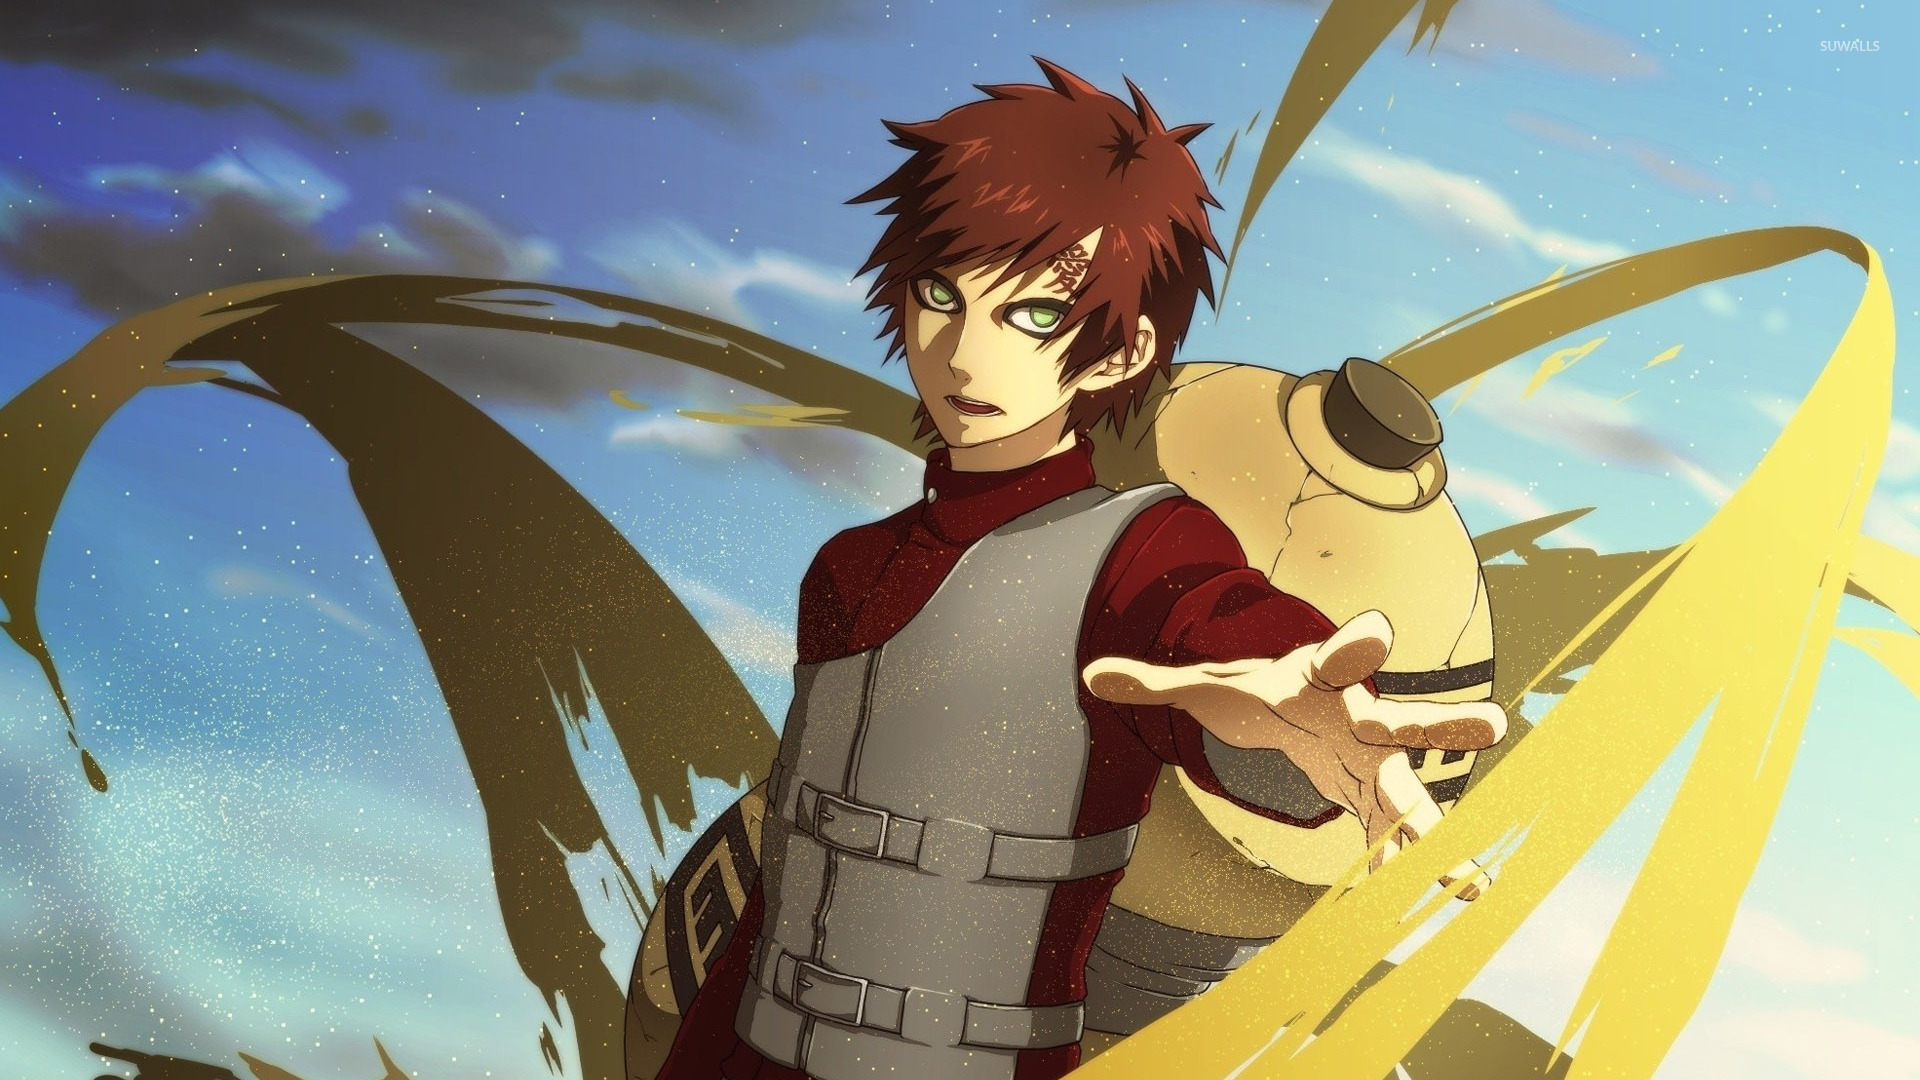 naruto and gaara wallpaper - photo #21